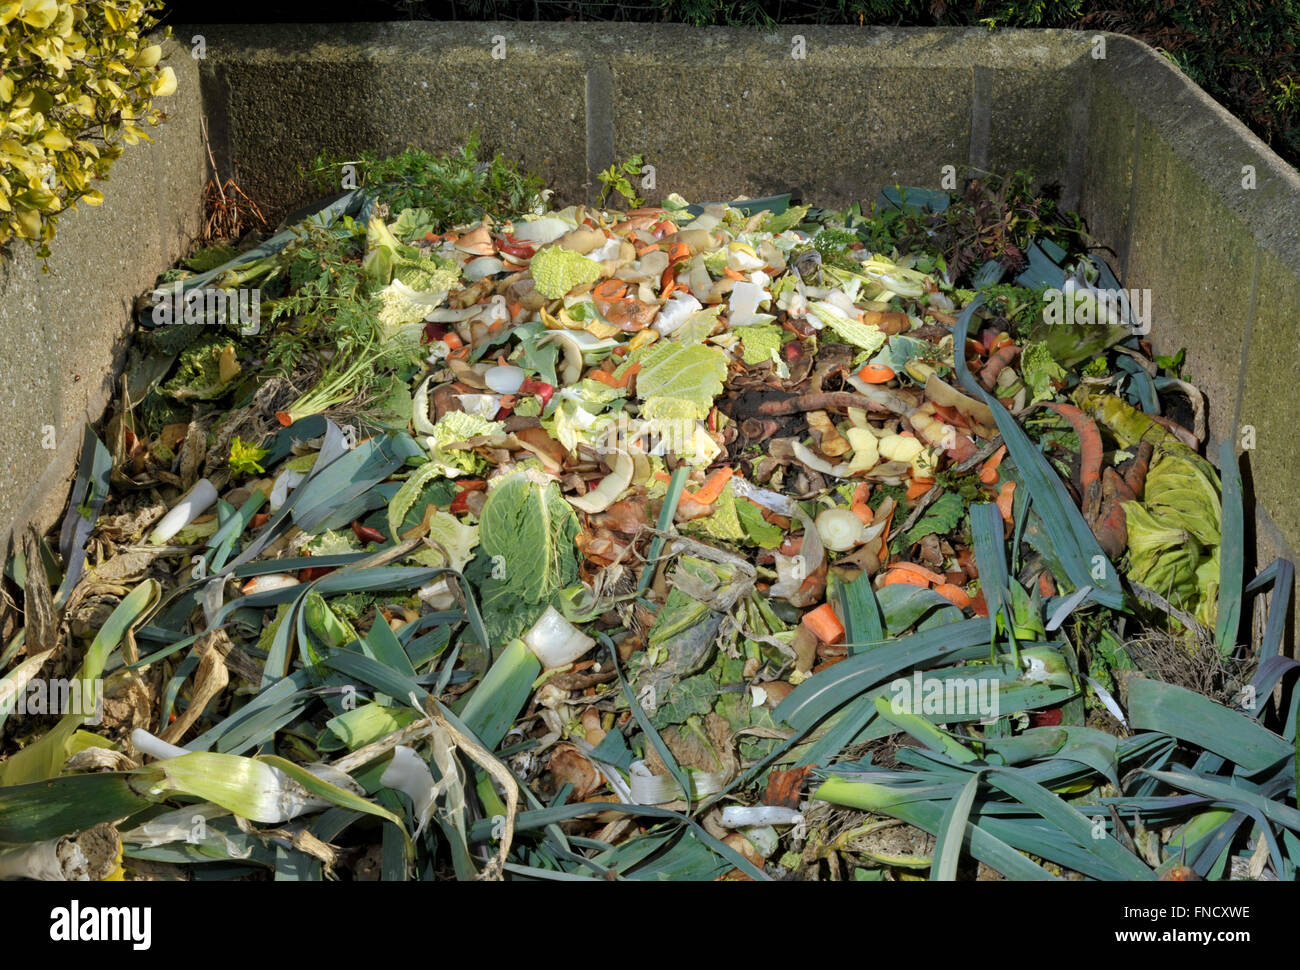 Garden Compost Heap With Kitchen Food Waste Vegetables Fruit